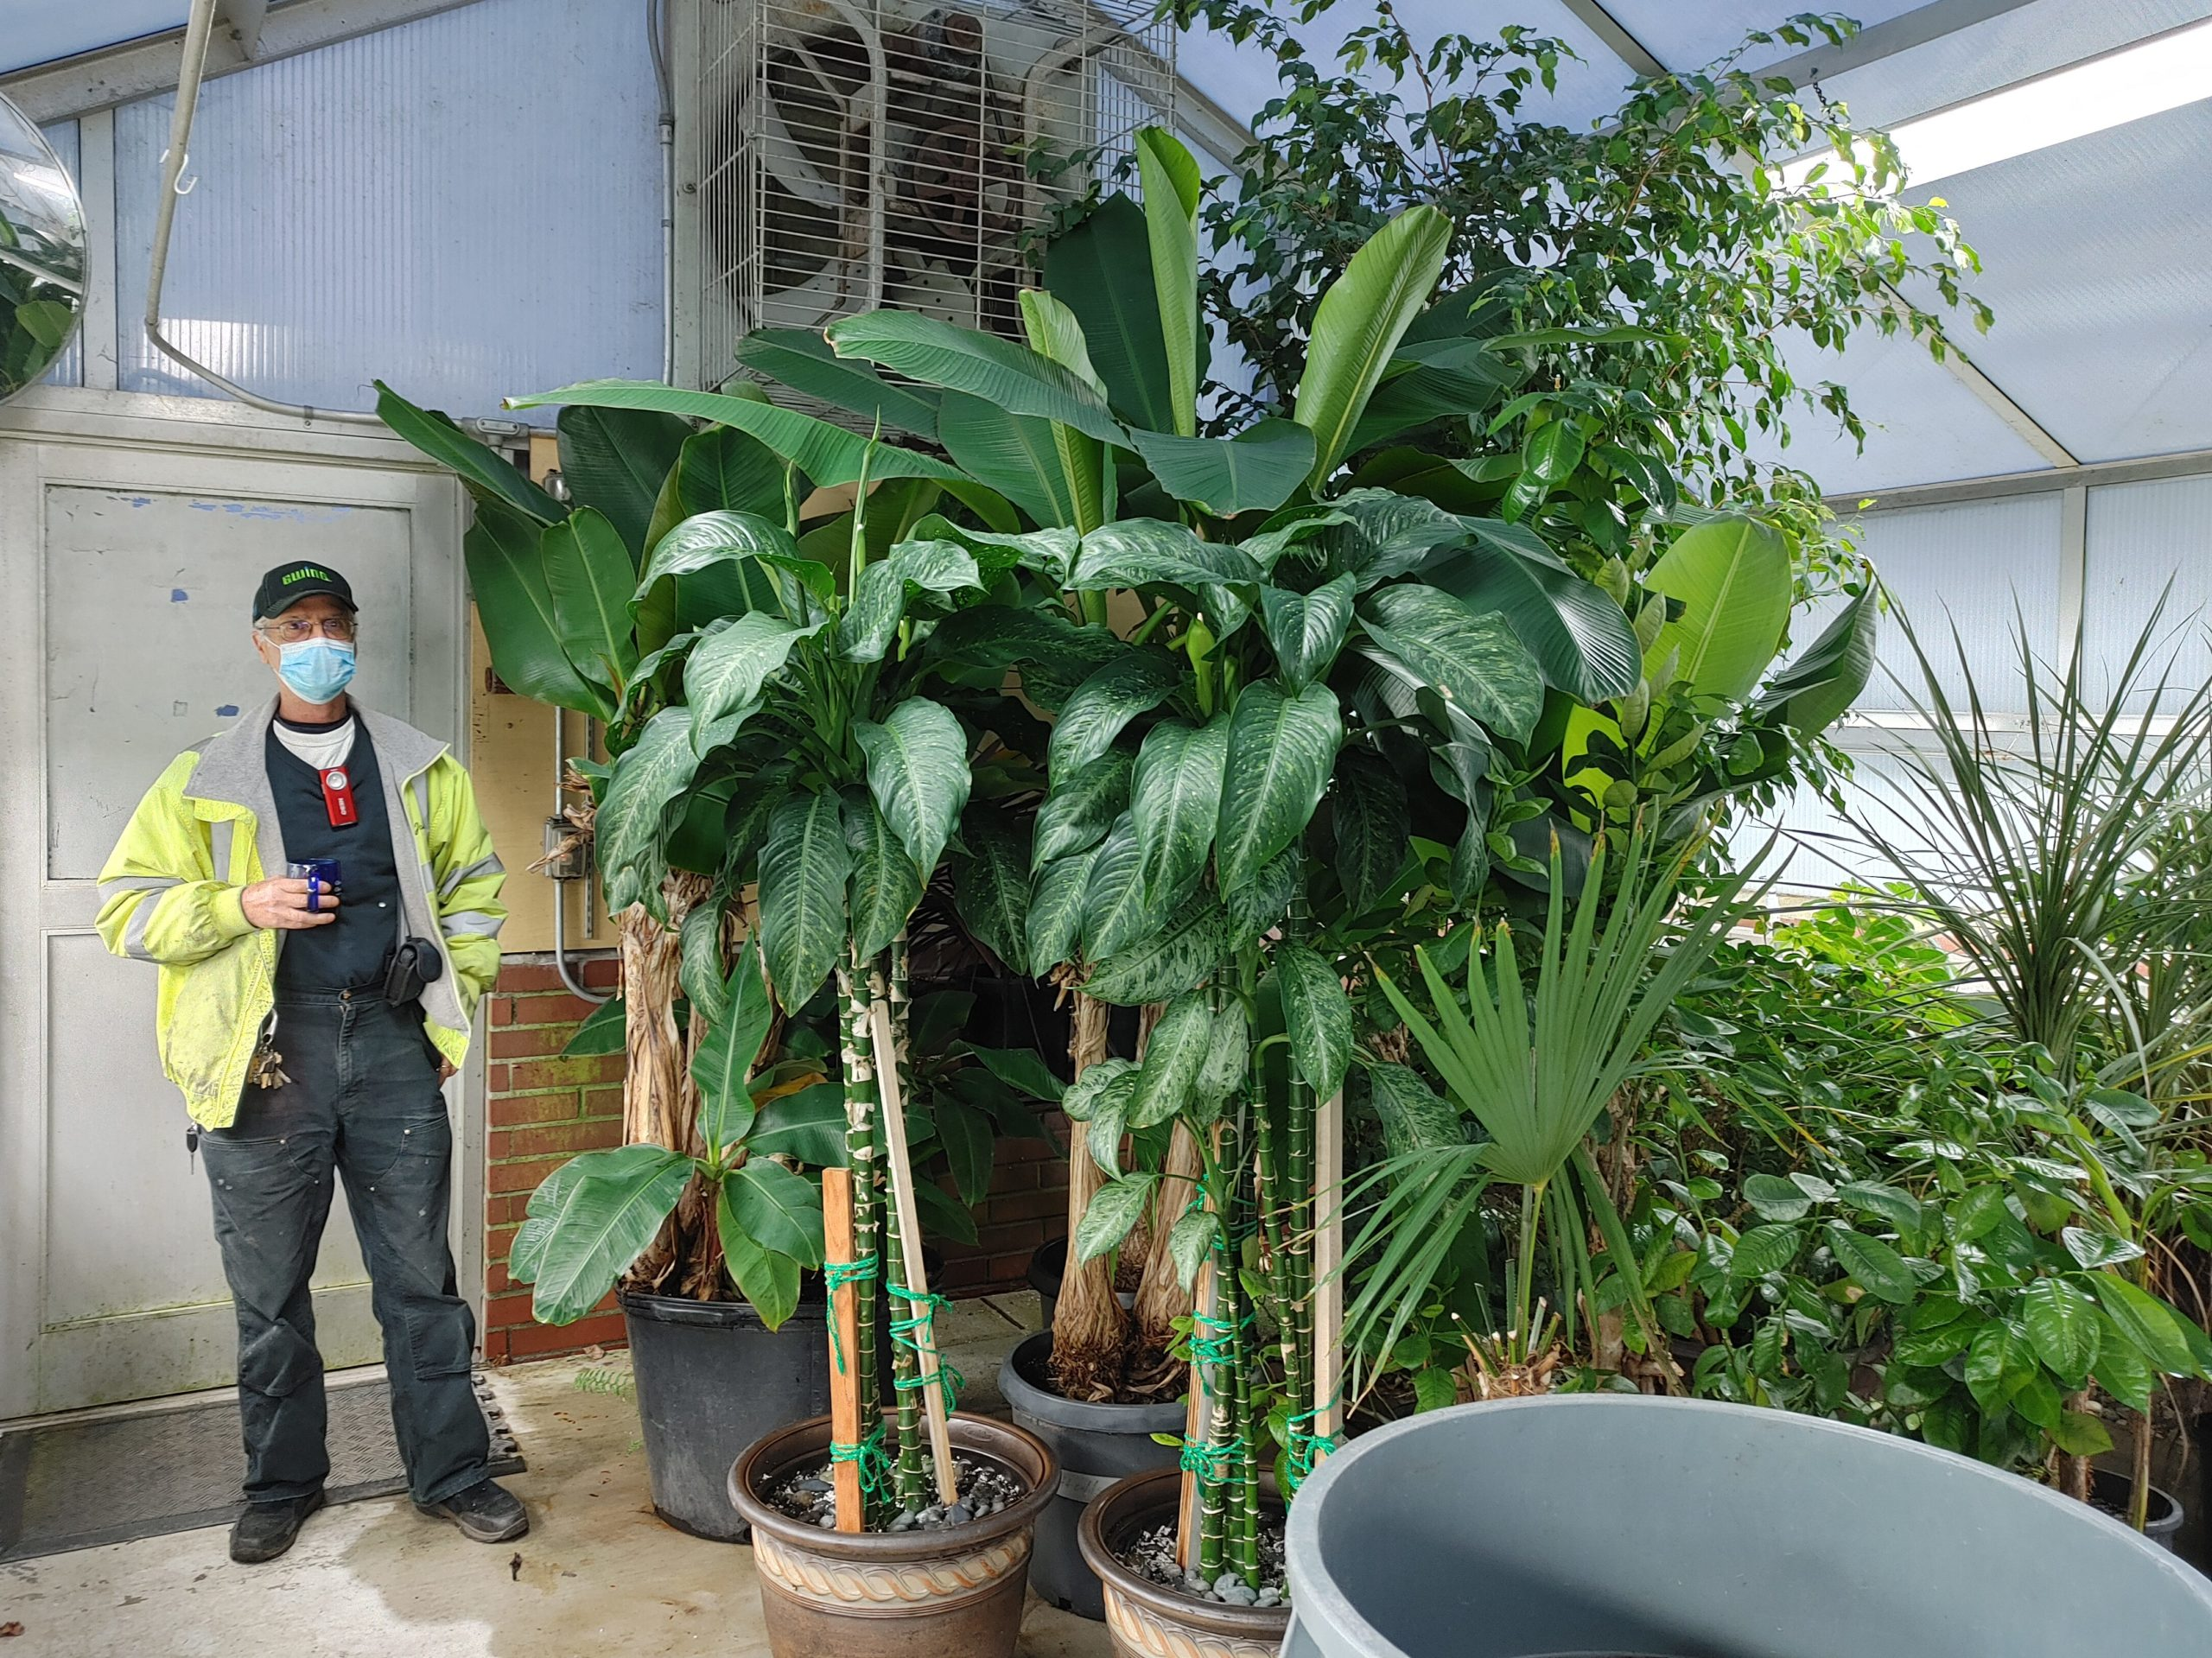 John Syson standing next to tall dieffenbachia plants